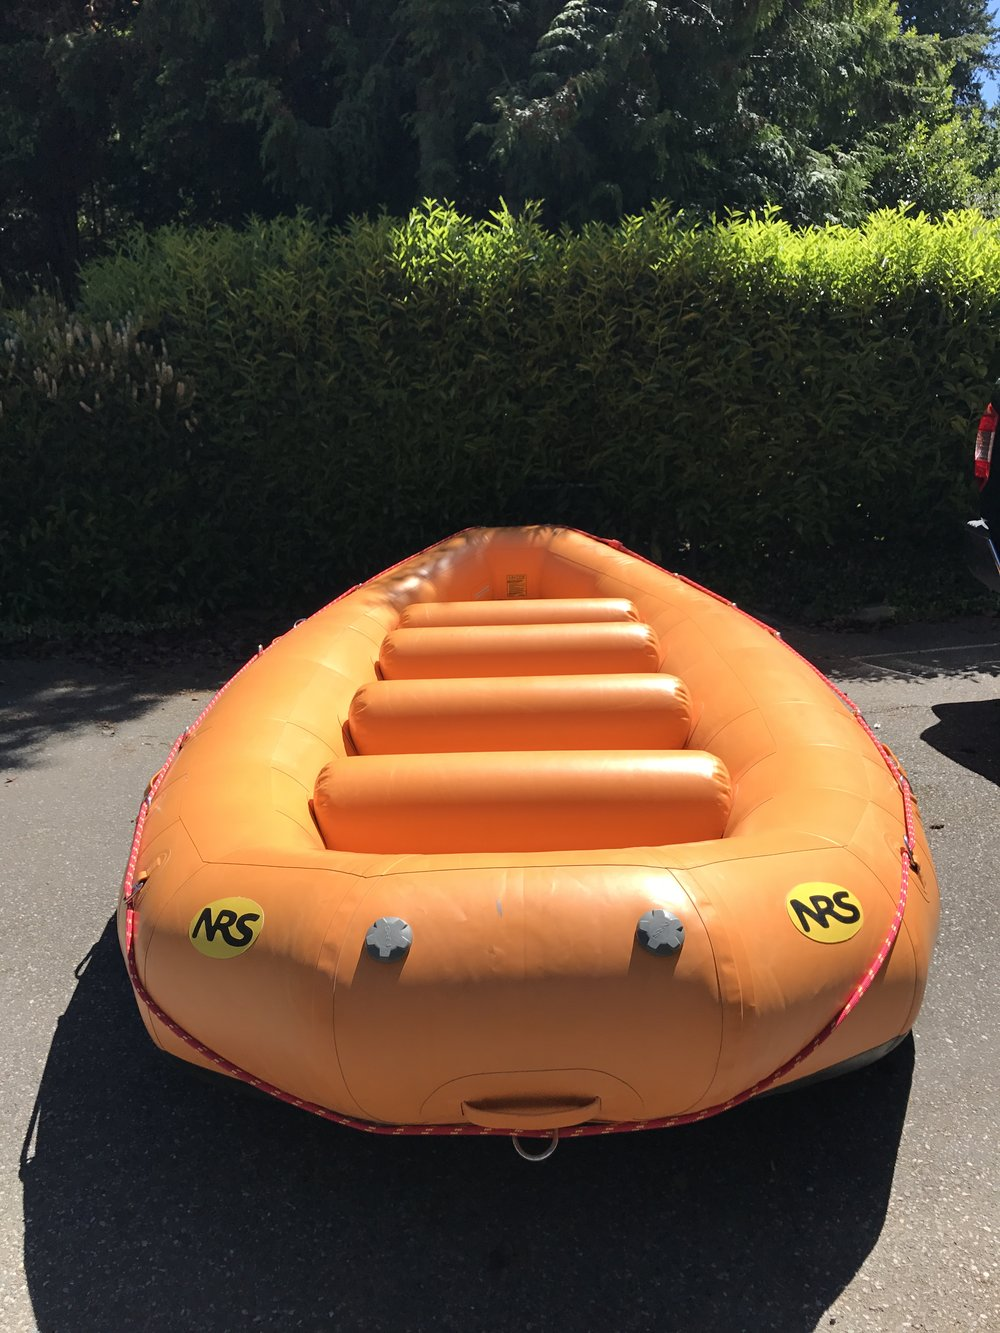 The prototype NRS E-151 whitewater raft. Source: Triad River Tours guide iPhone